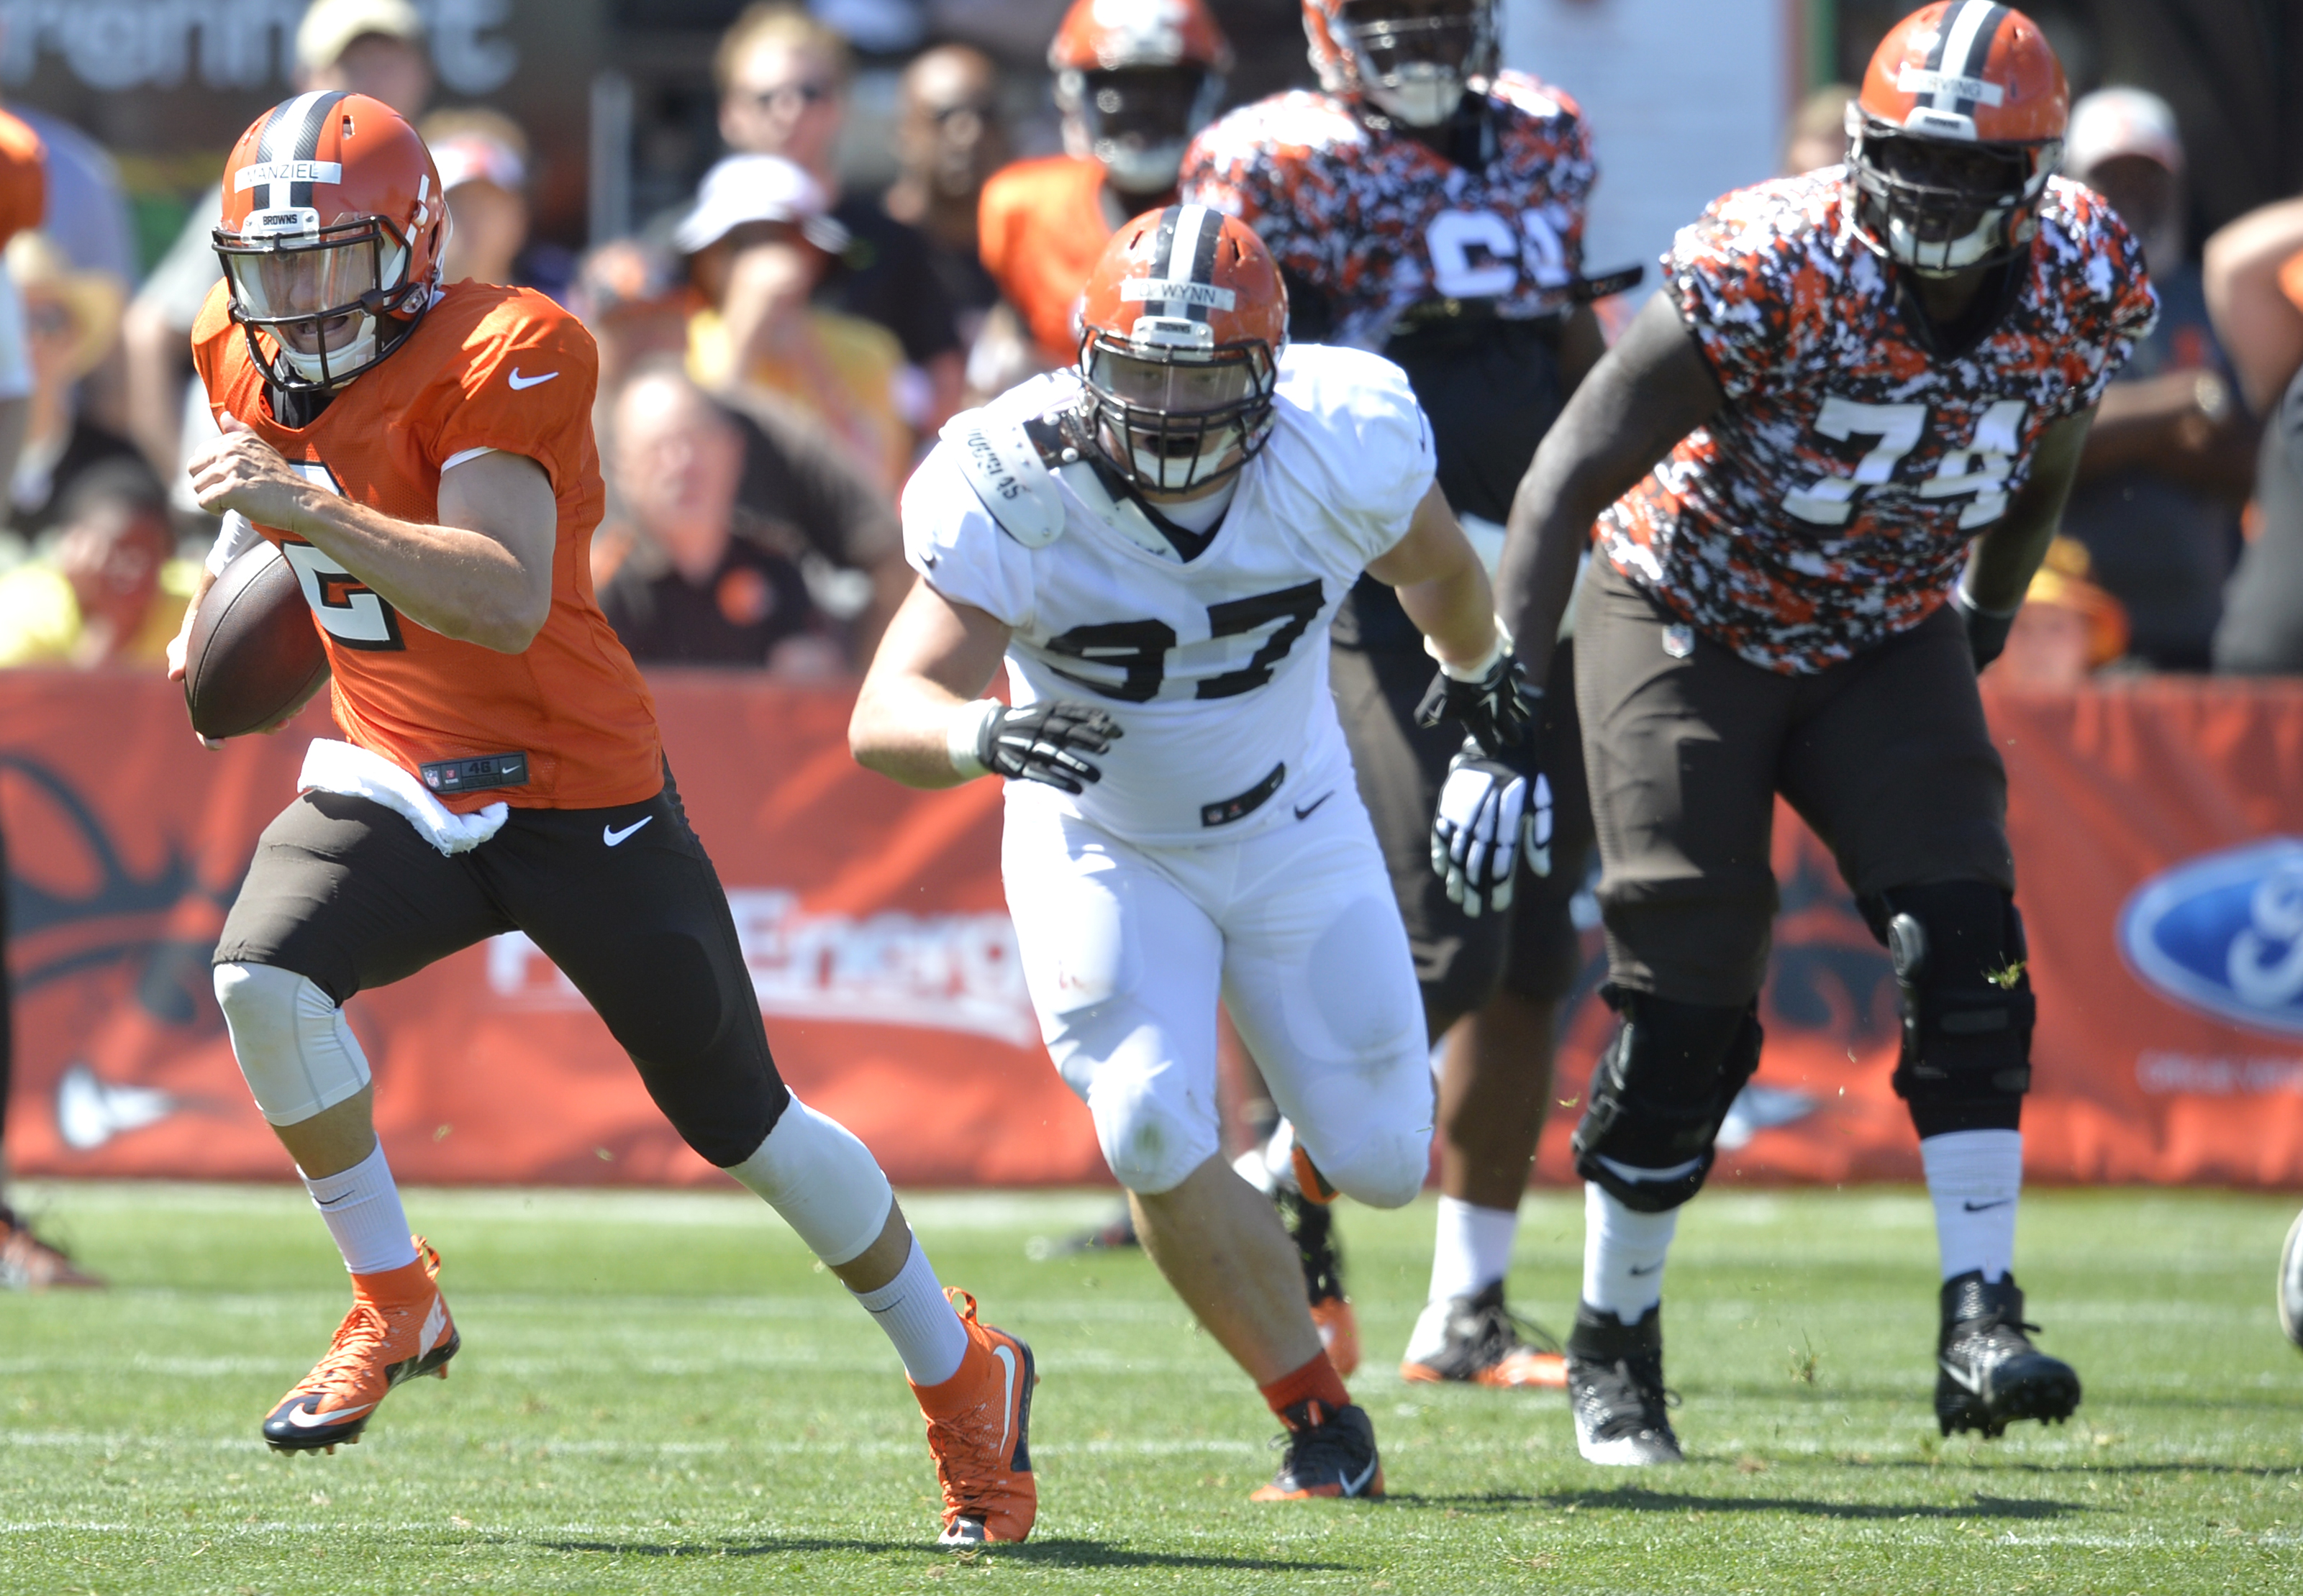 Cleveland Browns defensive tackle Dylan Wynn (97) chases quarterback Johnny Manziel (2) during practice at NFL football training camp, Tuesday, Aug. 4, 2015, in Berea, Ohio. (AP Photo/David Richard)